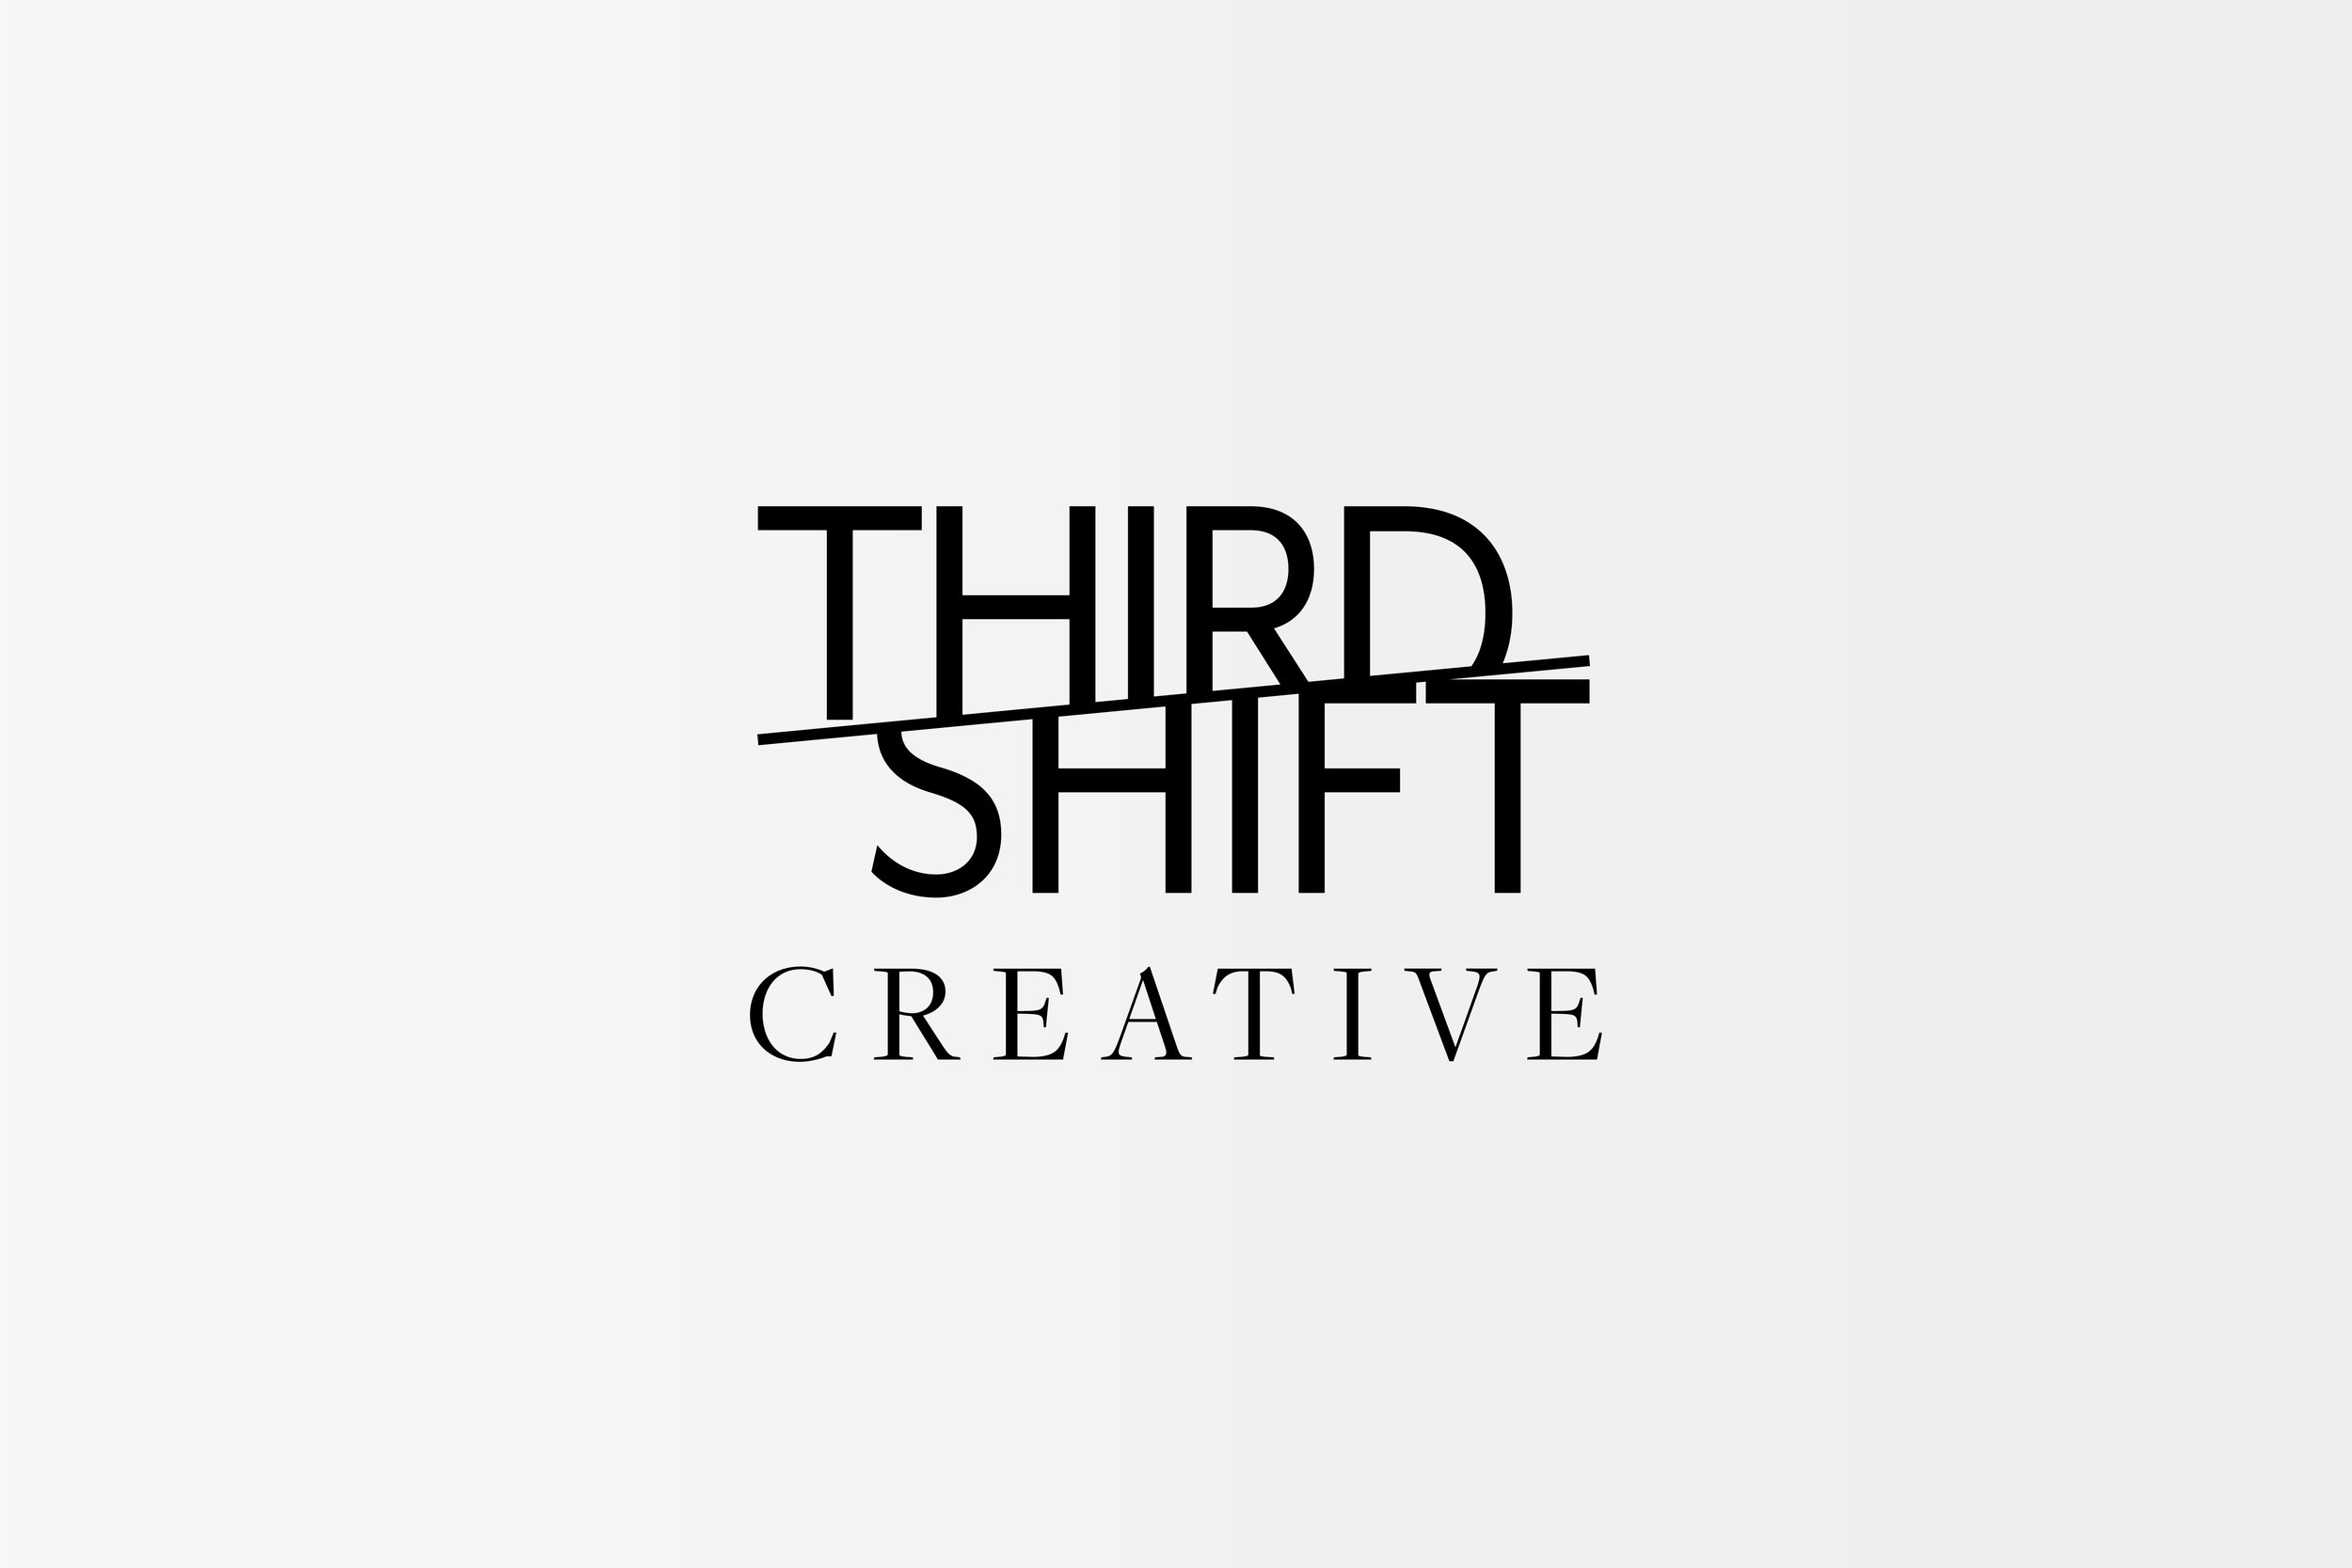 Third Shift Creative